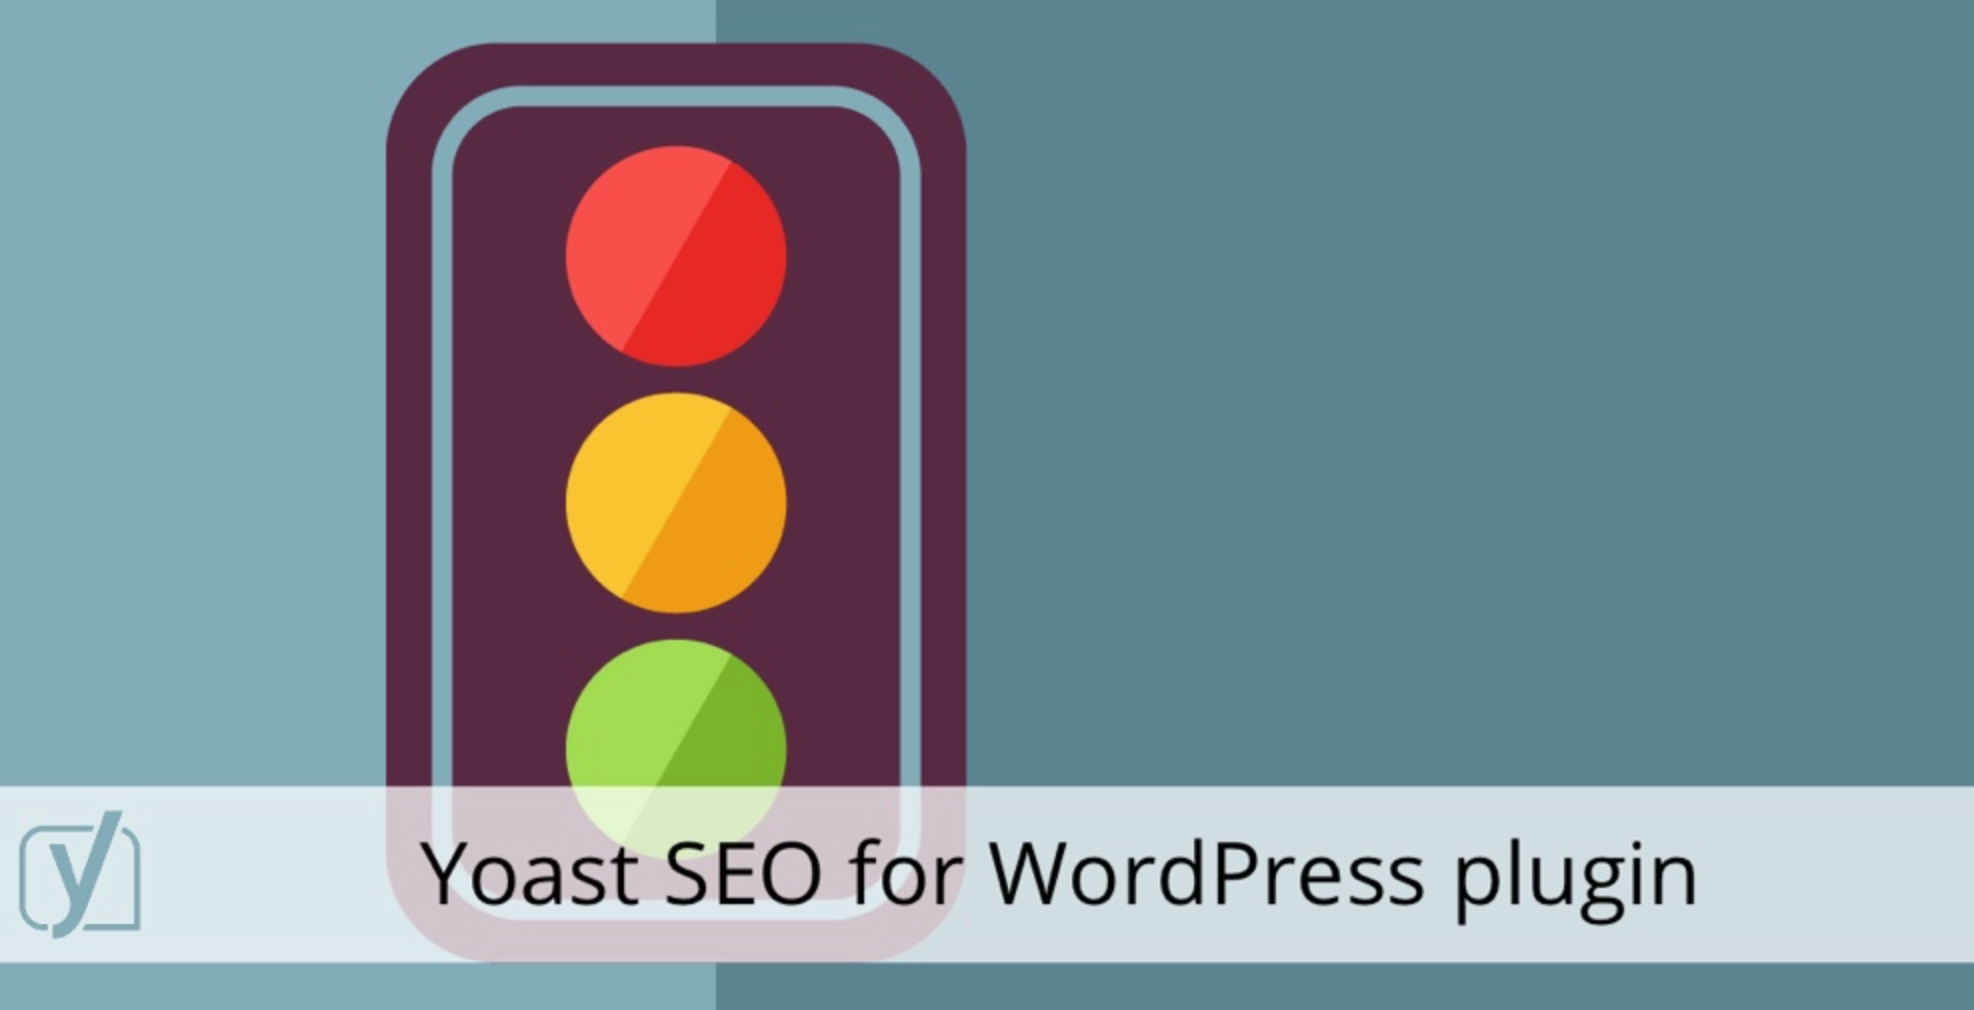 Improve SEO with Yoast